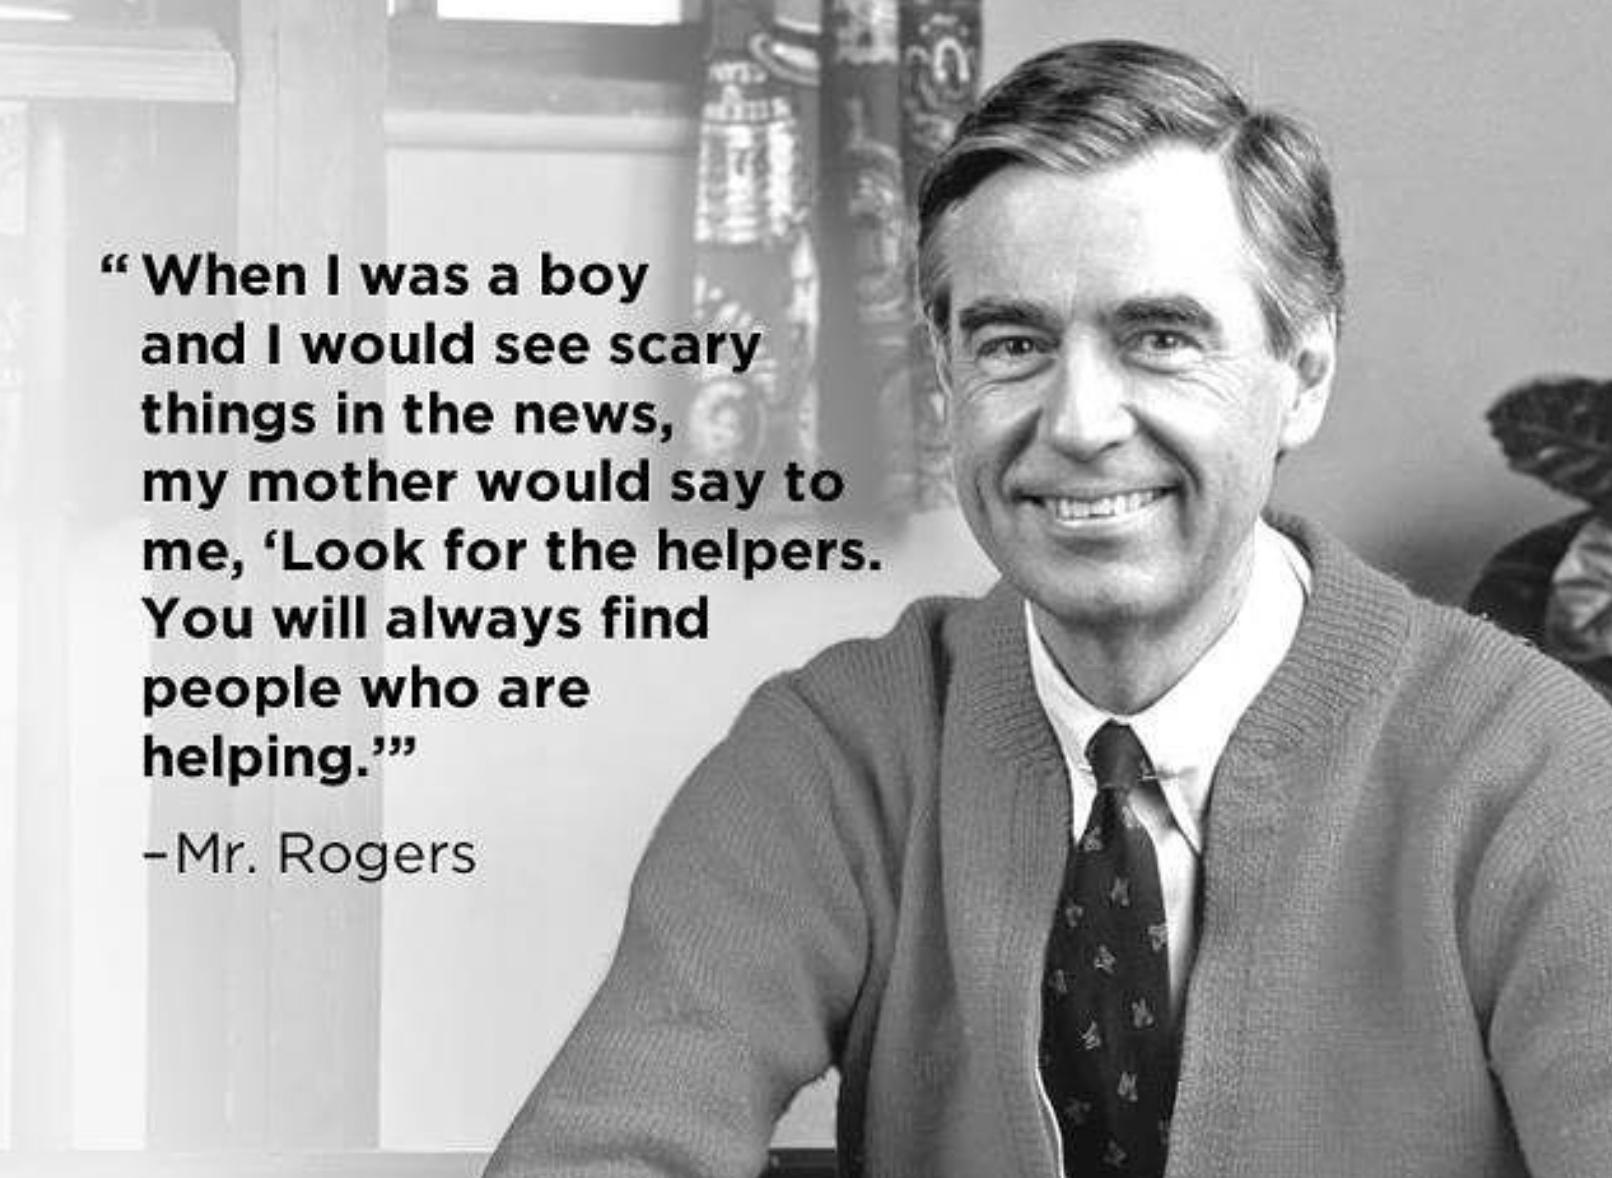 [image] Be the help the world needs right now.